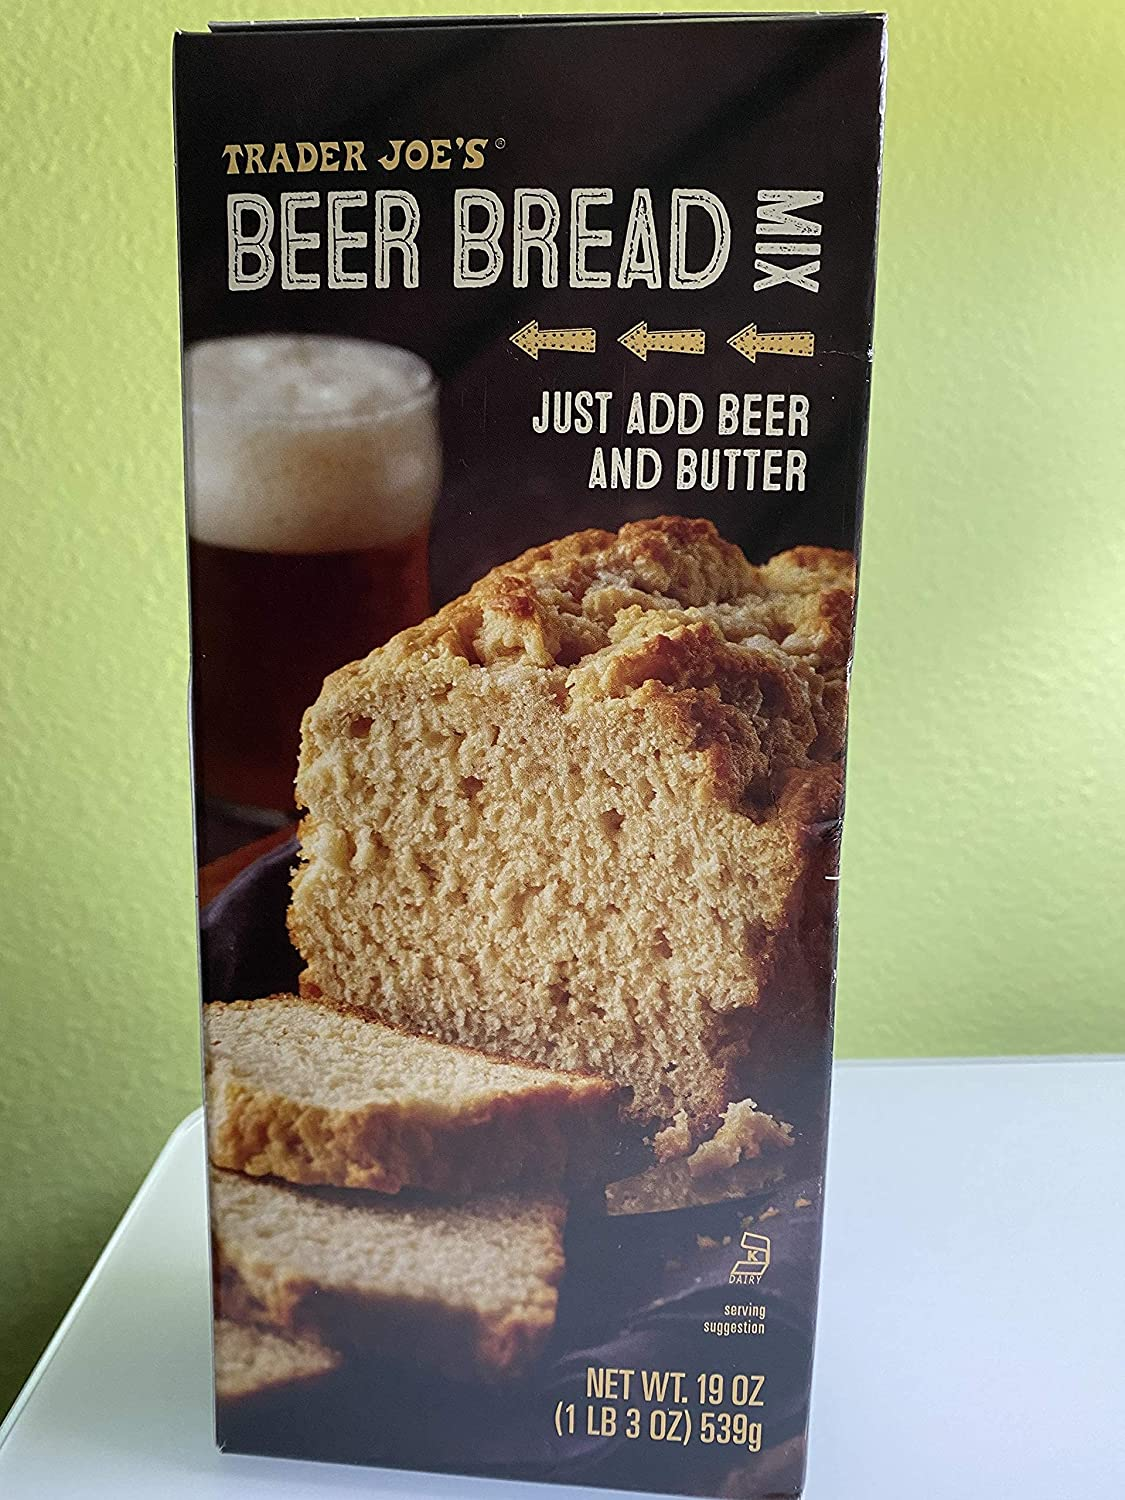 Beer Bread Virginia Beach Mall Mix 19 Set Cash special price 10 oz of